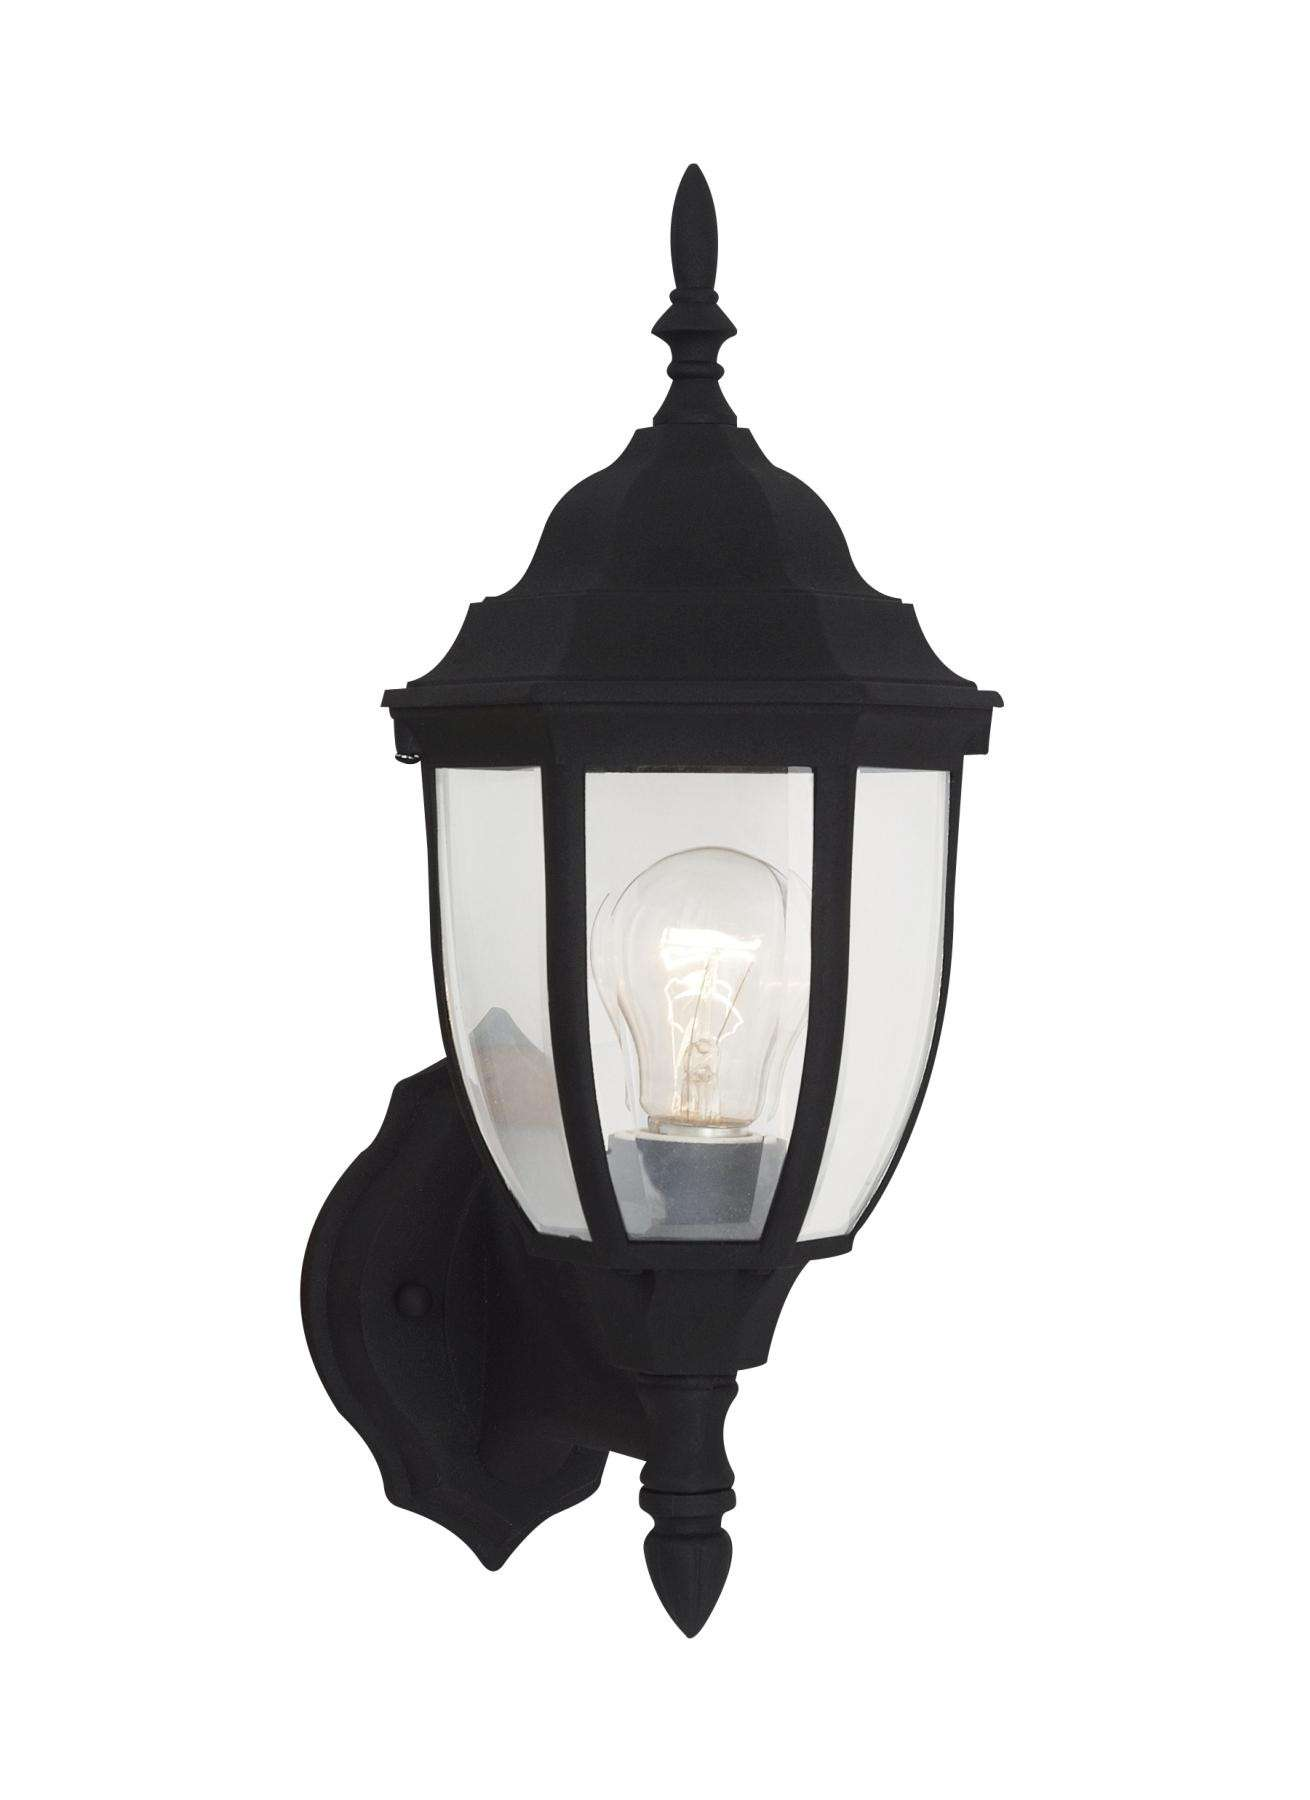 Seagull Lighting 88940-12 One Light Outdoor Wall Lantern in Black finish